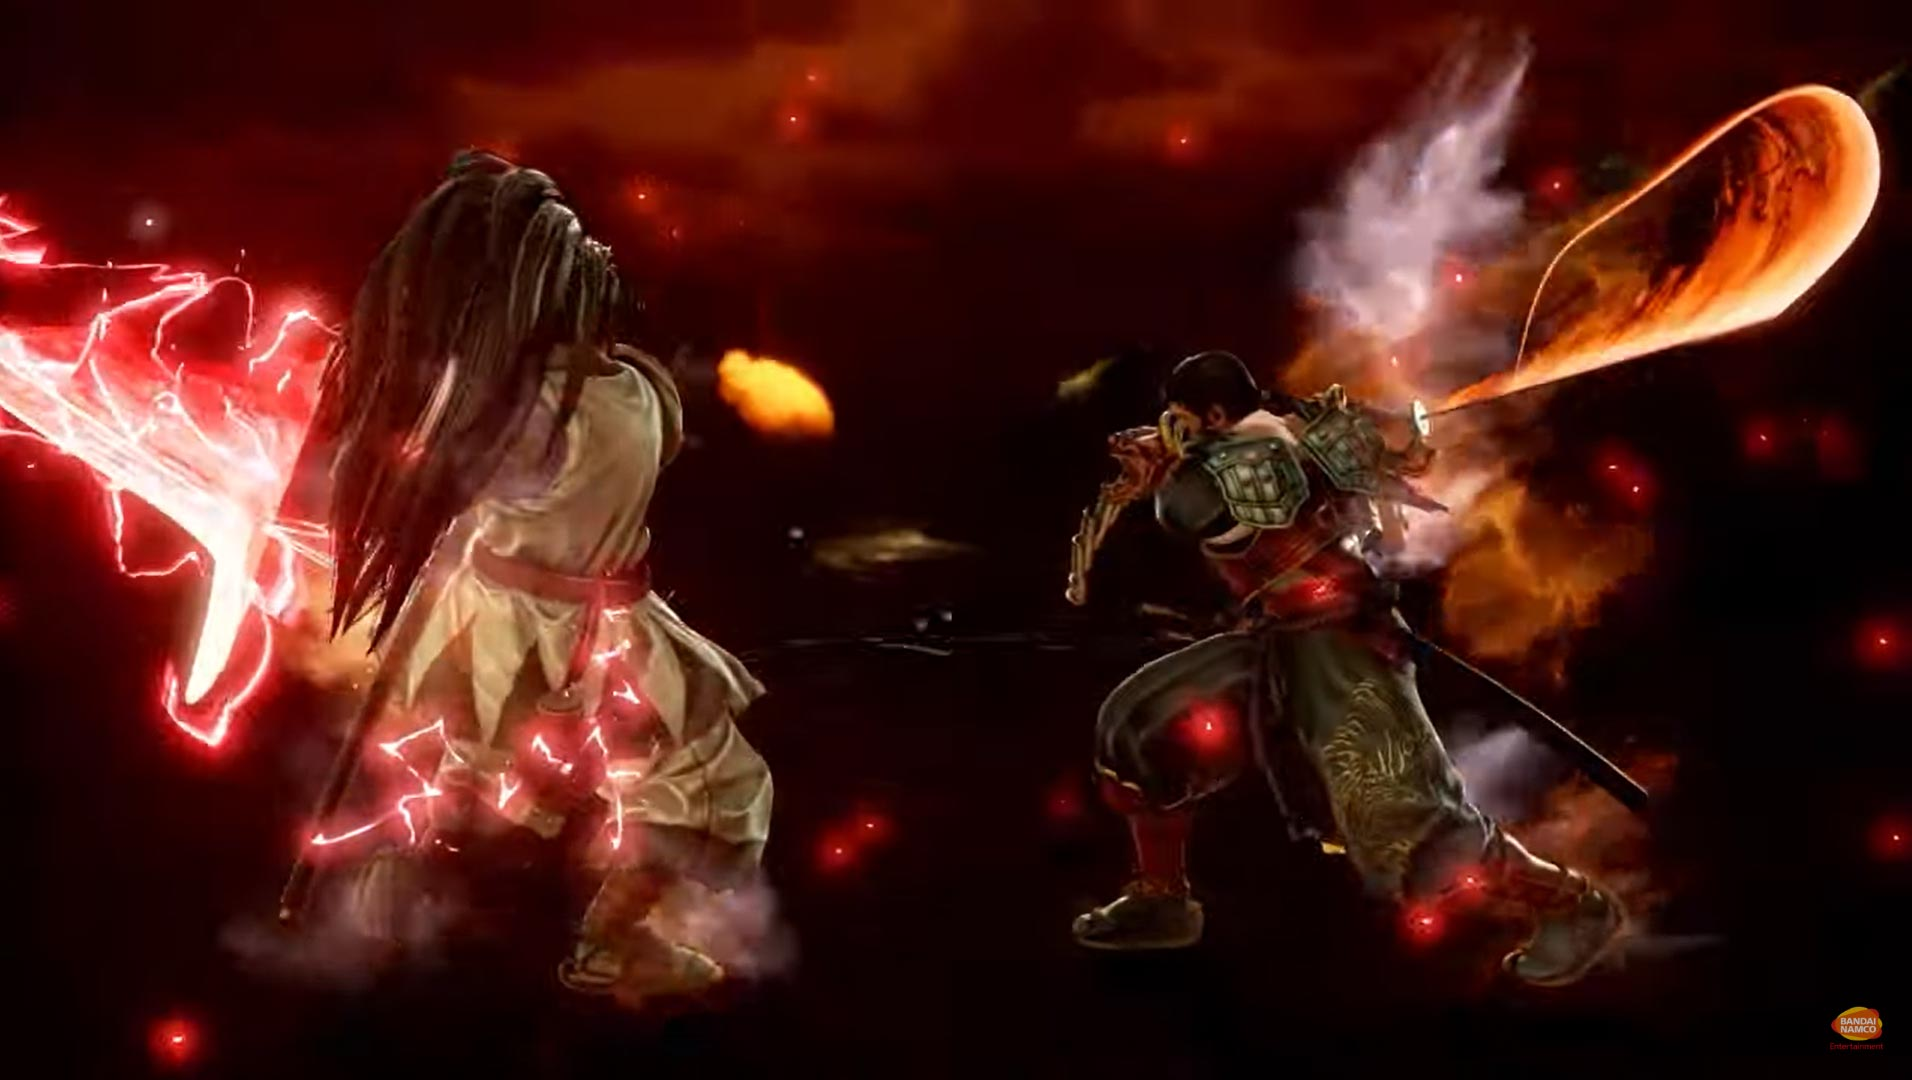 Haohmaru release date trailer 8 out of 9 image gallery